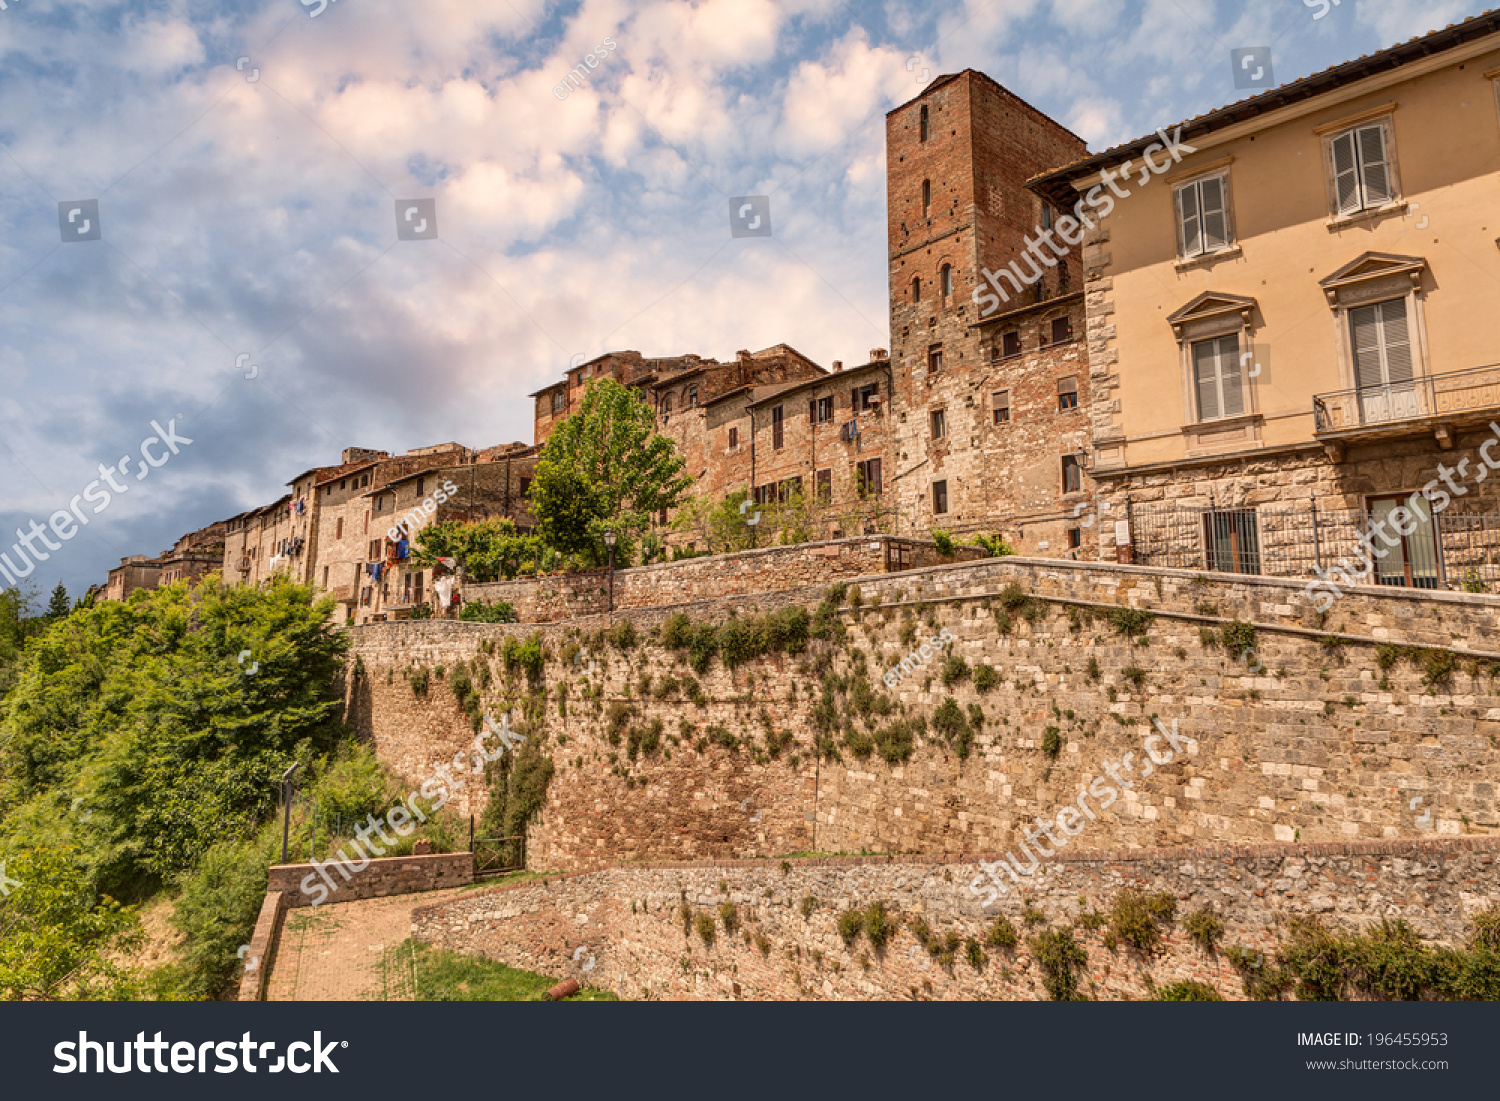 Colle Val D'Elsa Italy  city images : Colle di Val d'Elsa, Siena, Tuscany, Italy. View of the medieval town ...